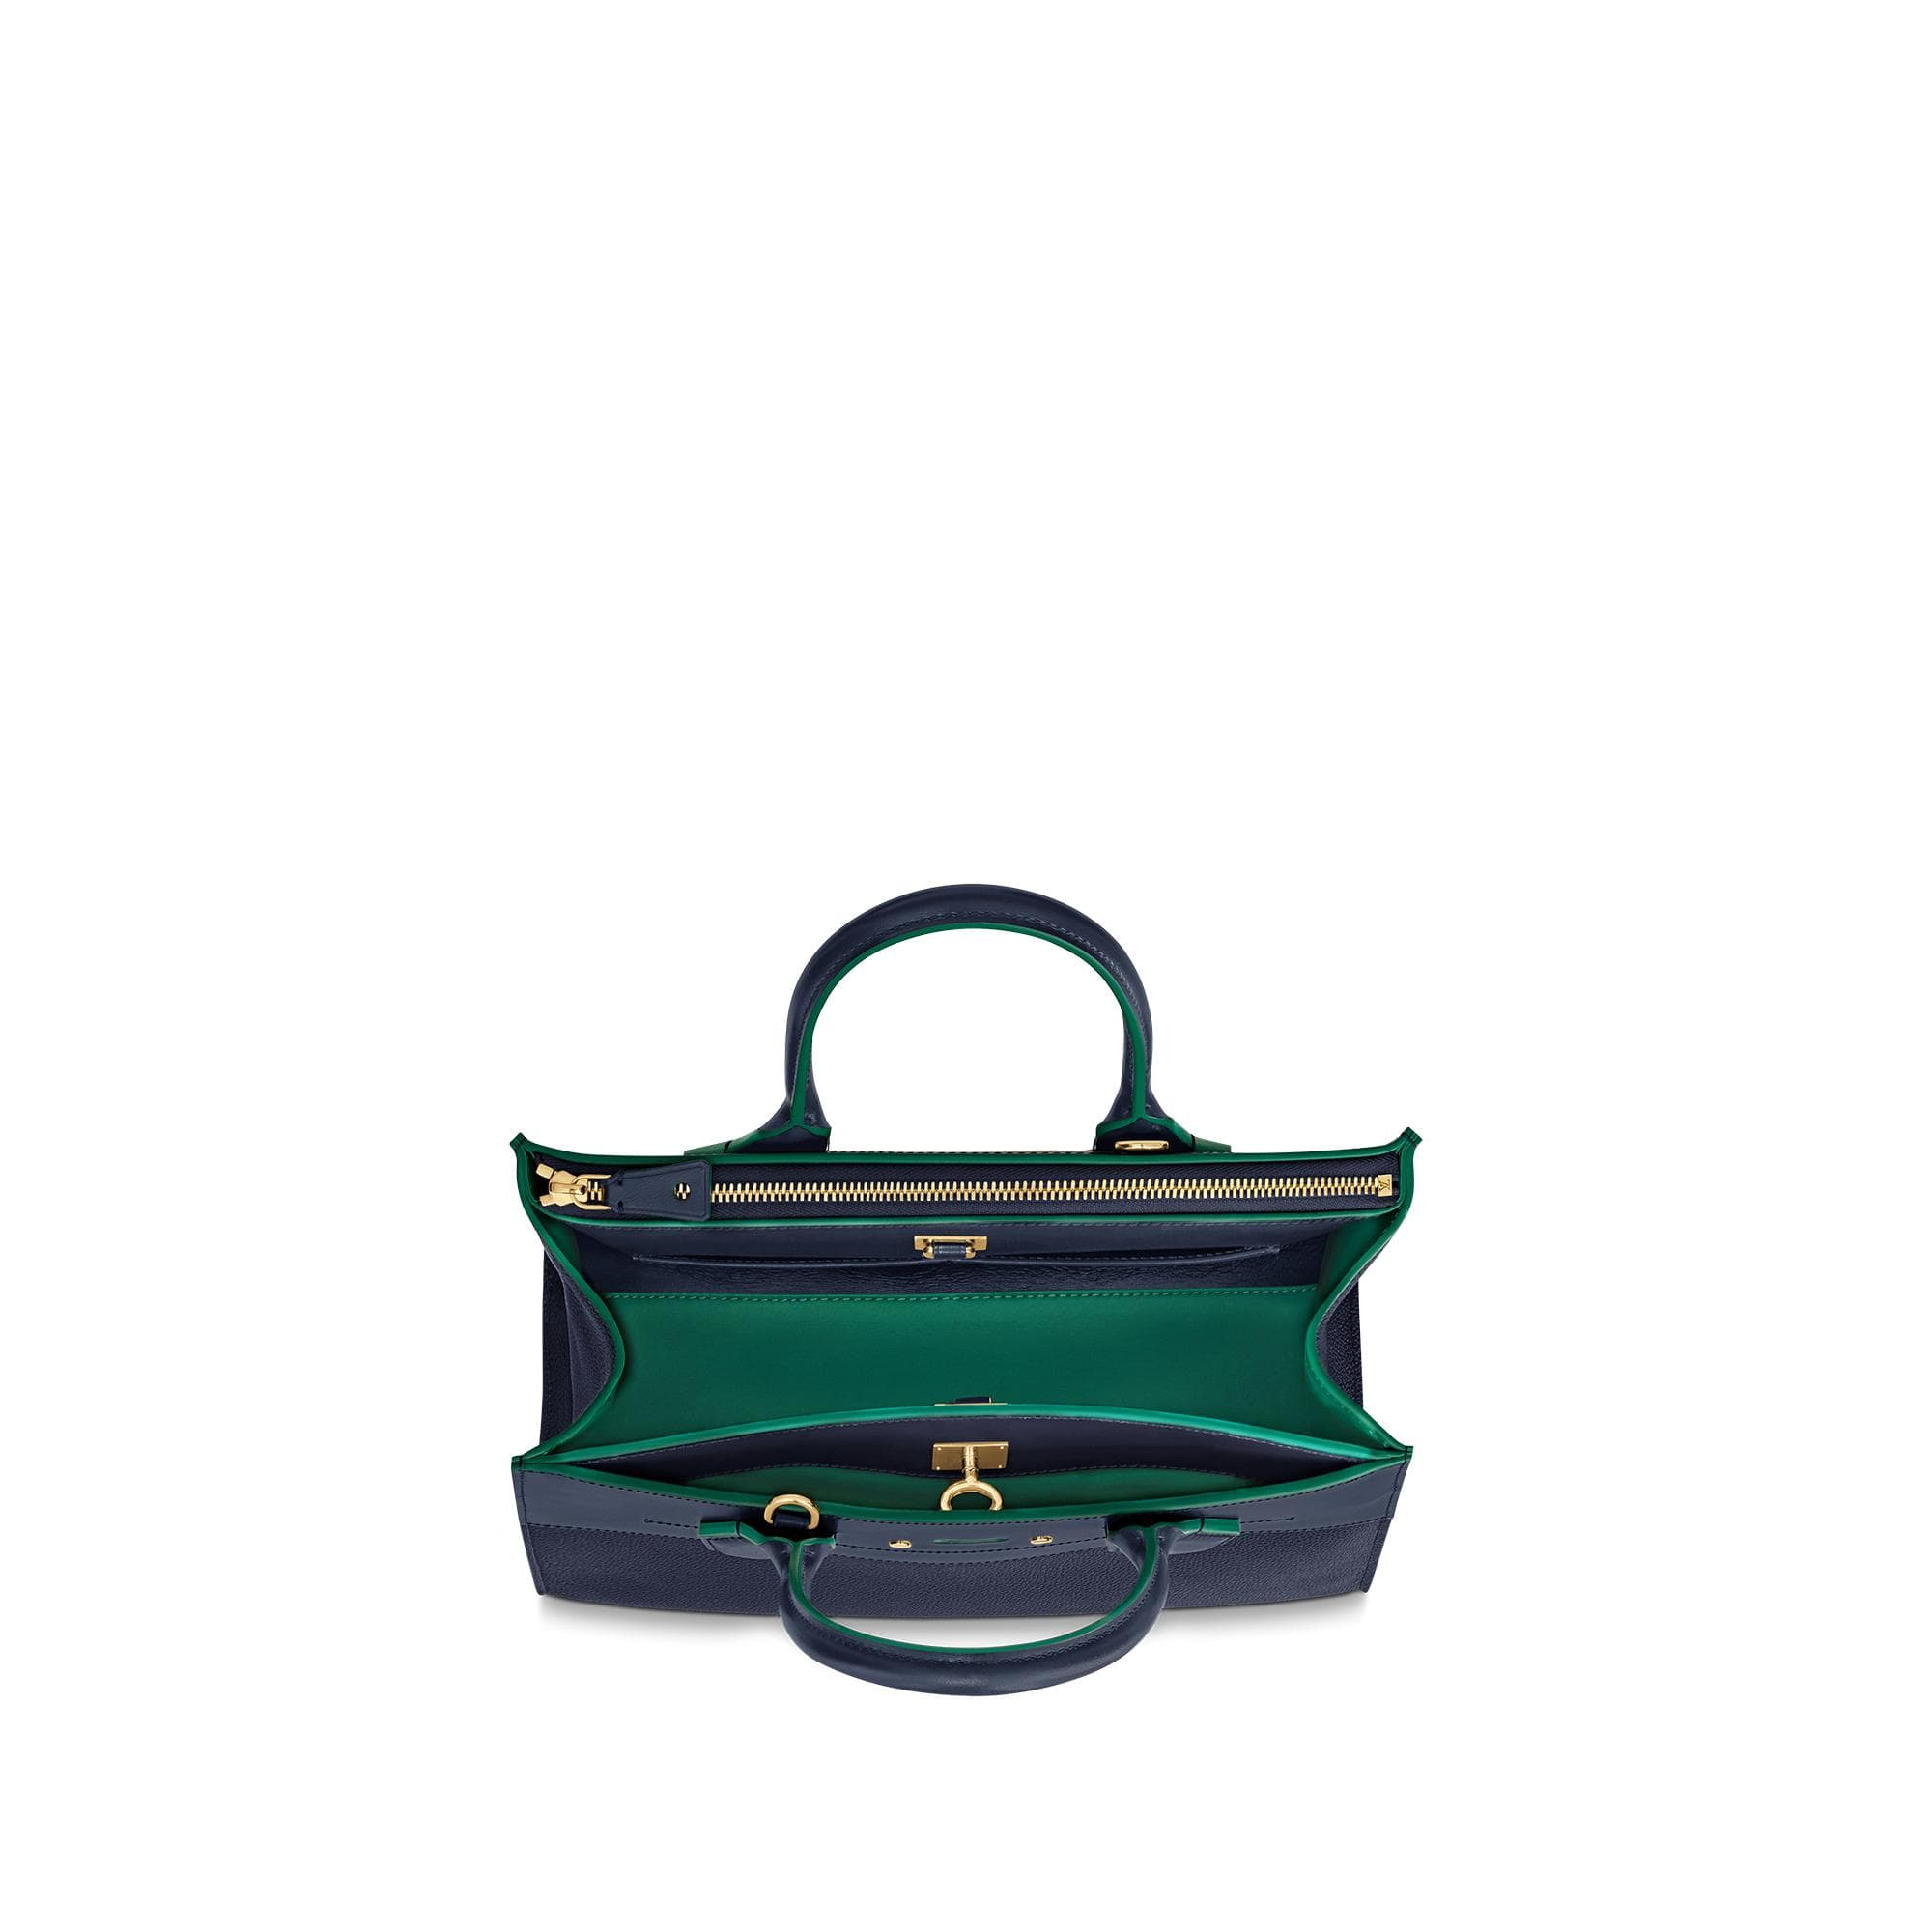 유럽직배송 루이비통 LOUIS VUITTON City Steamer MM M55347